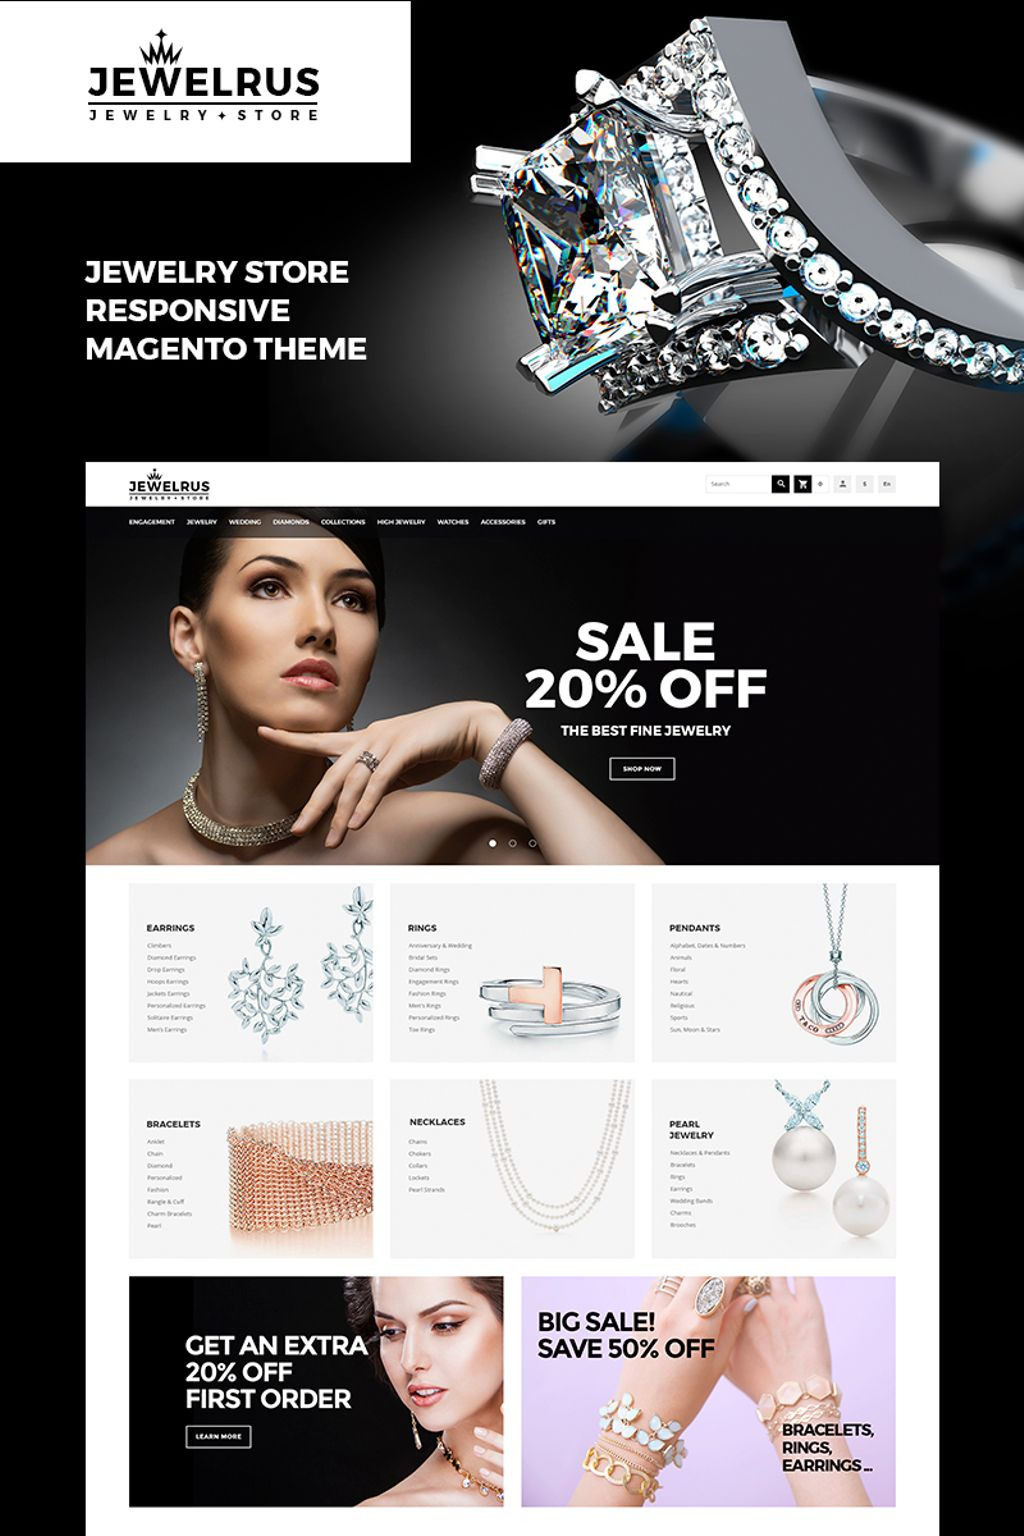 Jewelrus - Jewelry Store Magento Theme Big Screenshot